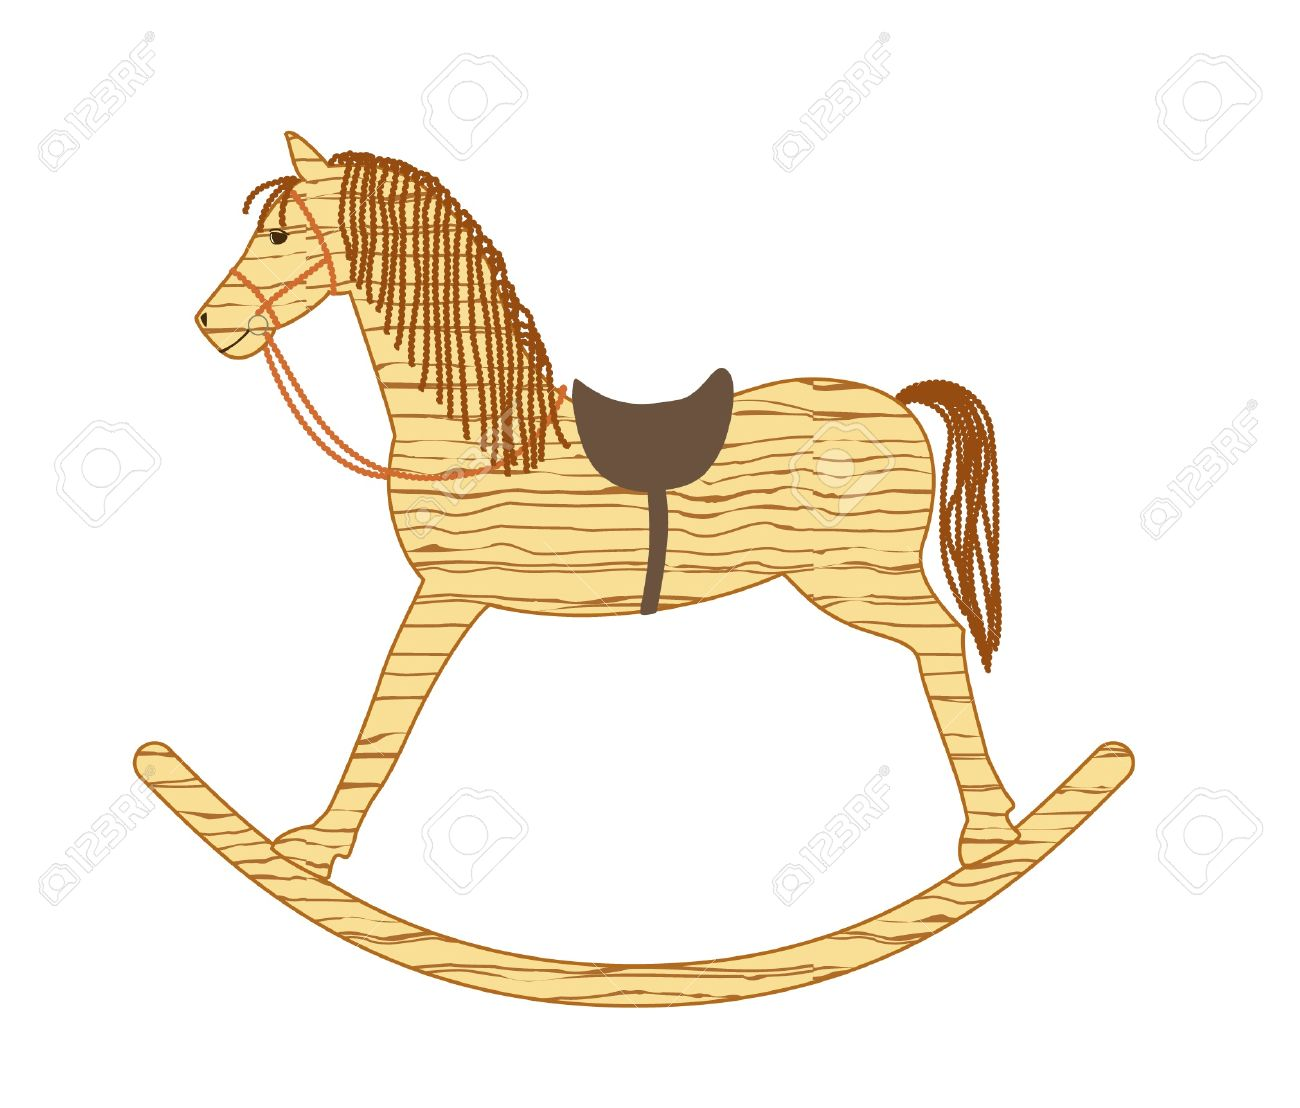 Wooden Rocking Horse Royalty Free Cliparts Vectors And Stock Illustration Image 19938918